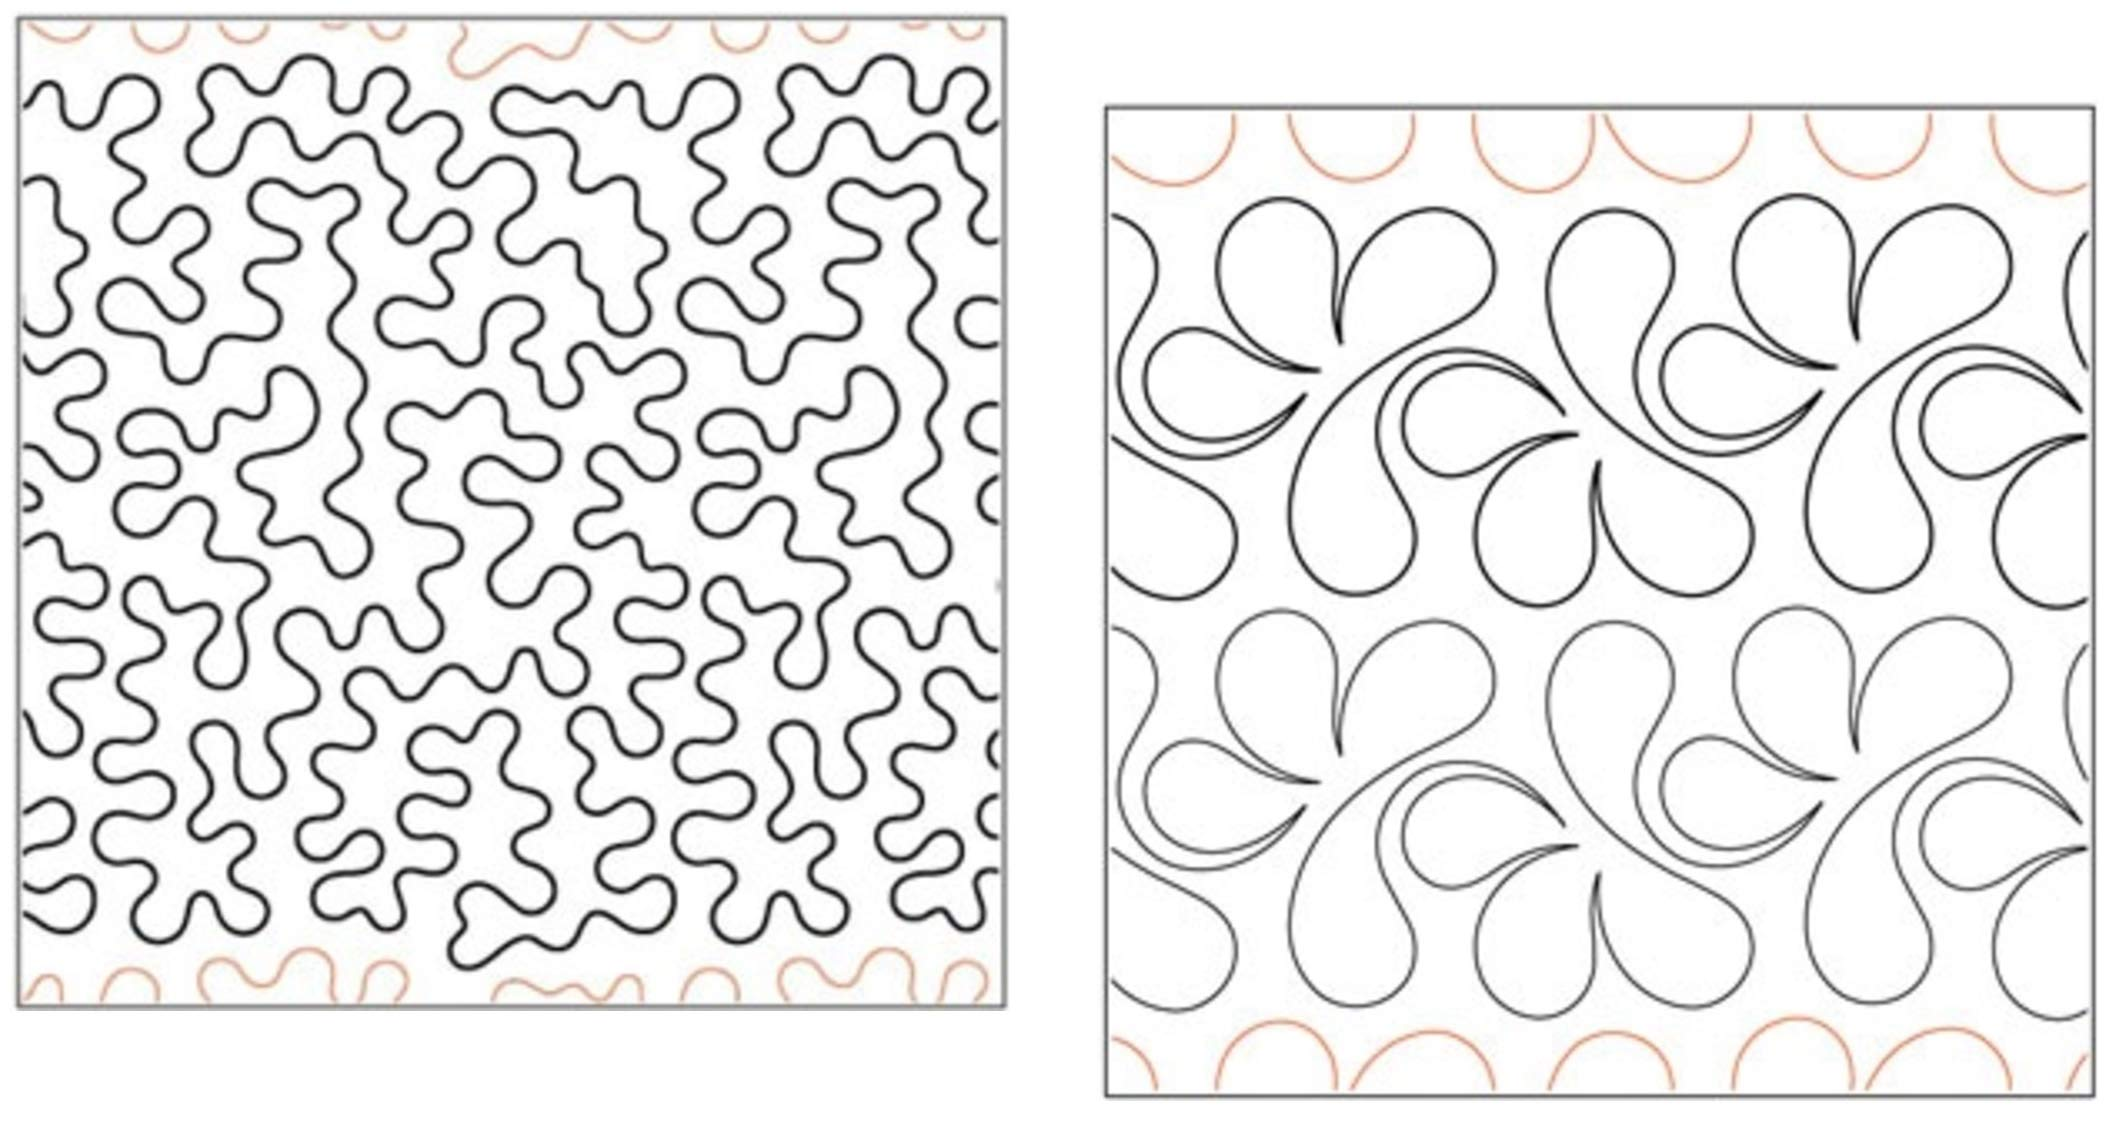 Quilting Creations Pantographs for Quilting | Set of 2 Rolls of Paper Pantograph Patterns for Longarm Quilting Machines | Basic Stipple and Splish Splash Quilt Pantographs by Generic